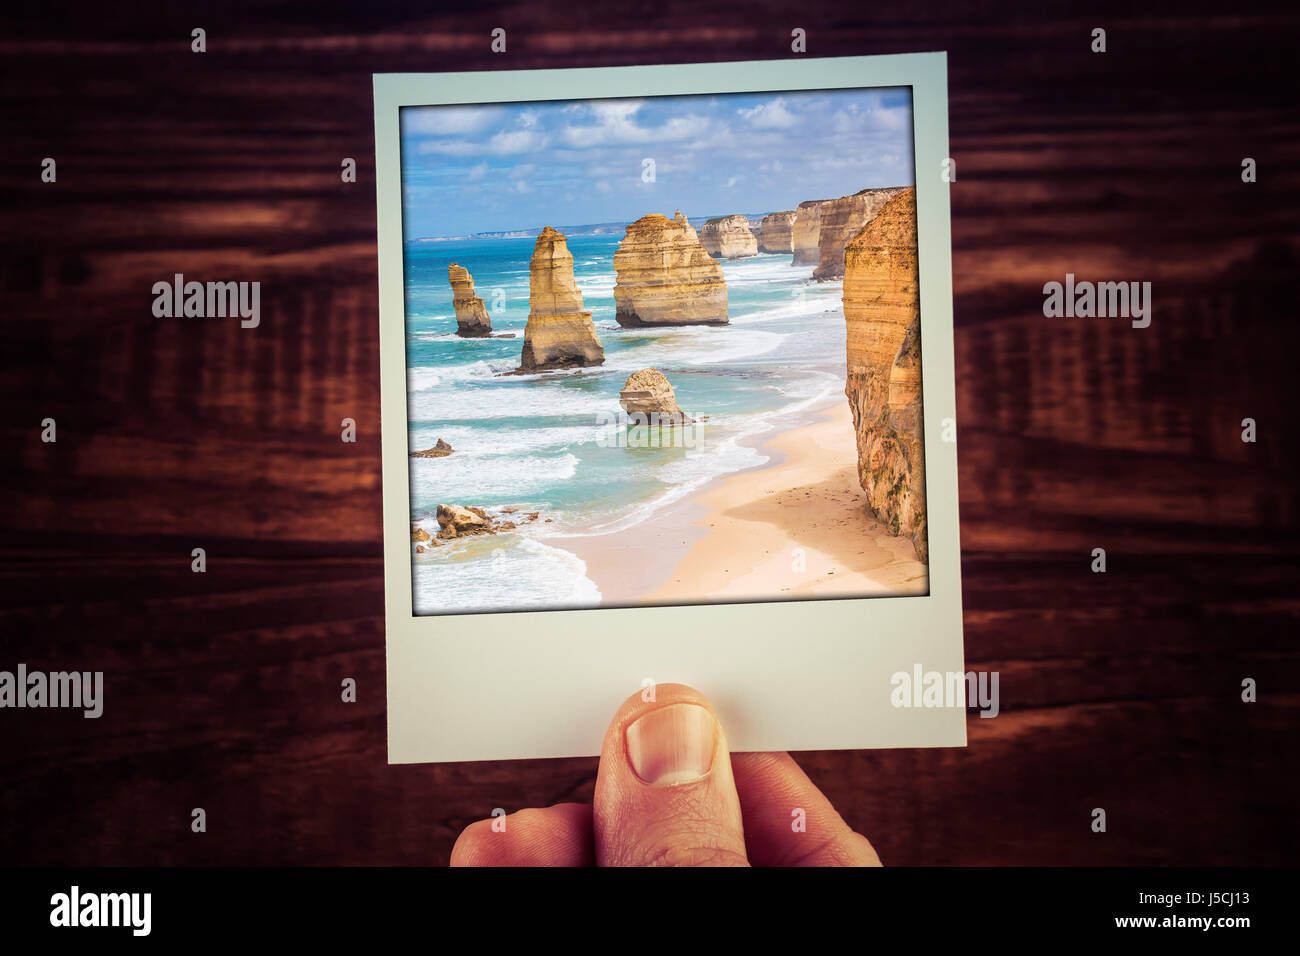 Hand holding polaroid photograph of The Twelve Apostles, Great Ocean Road, Australia with copy space. Travel memories - Stock Image